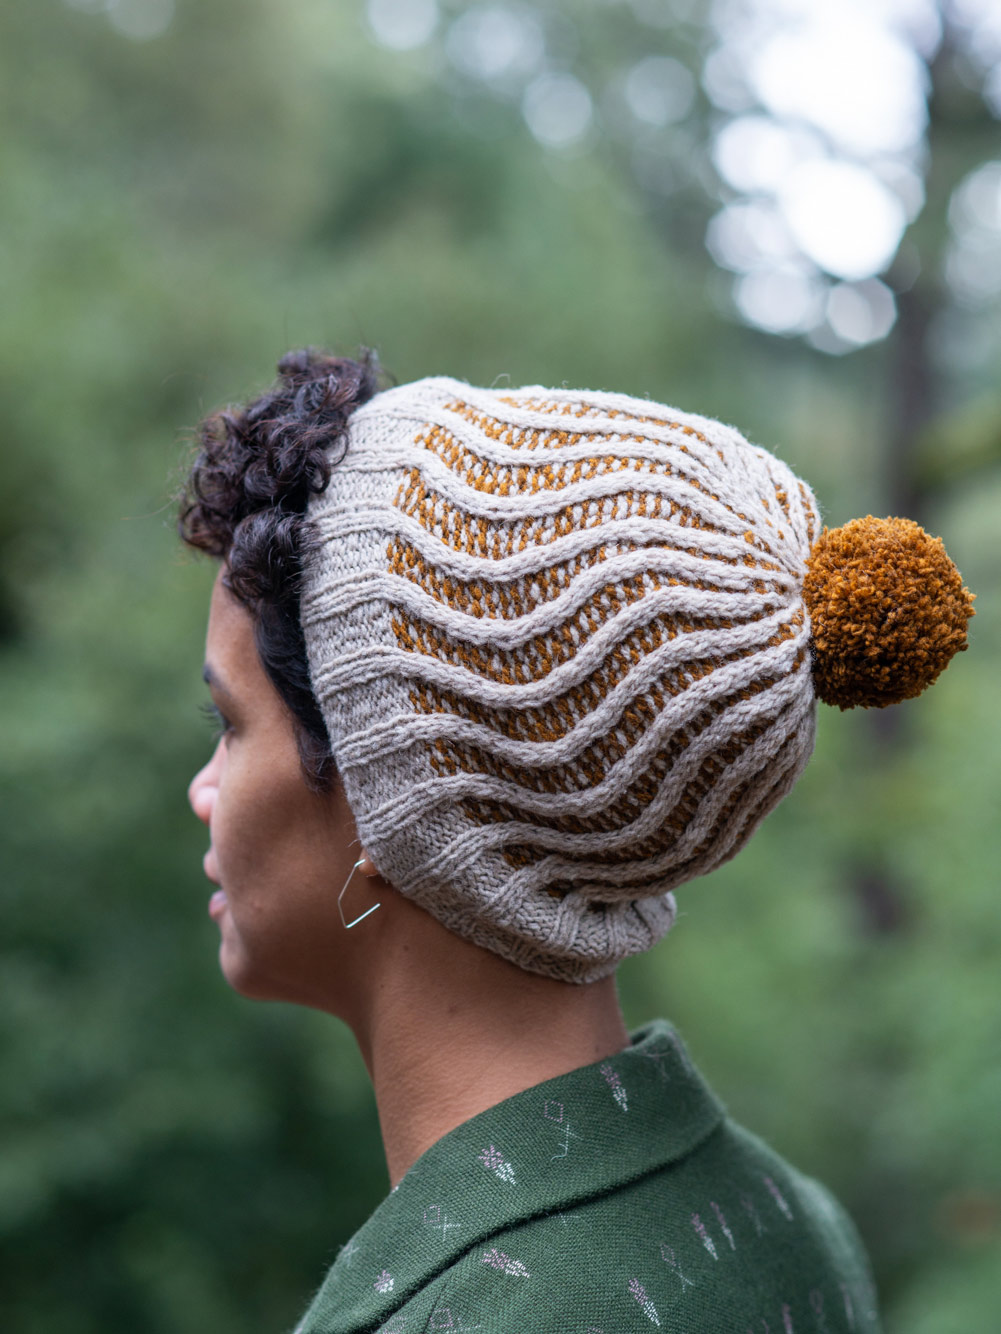 back view of woman in forest wearing a mustard yellow and off-white hat, featuring an all-over pattern of winding stitches in off-white over a background of reverse stockinette worked in 1-row stripes of alternating mustard yellow and off-white. Hat as a mustard yellow pom pom